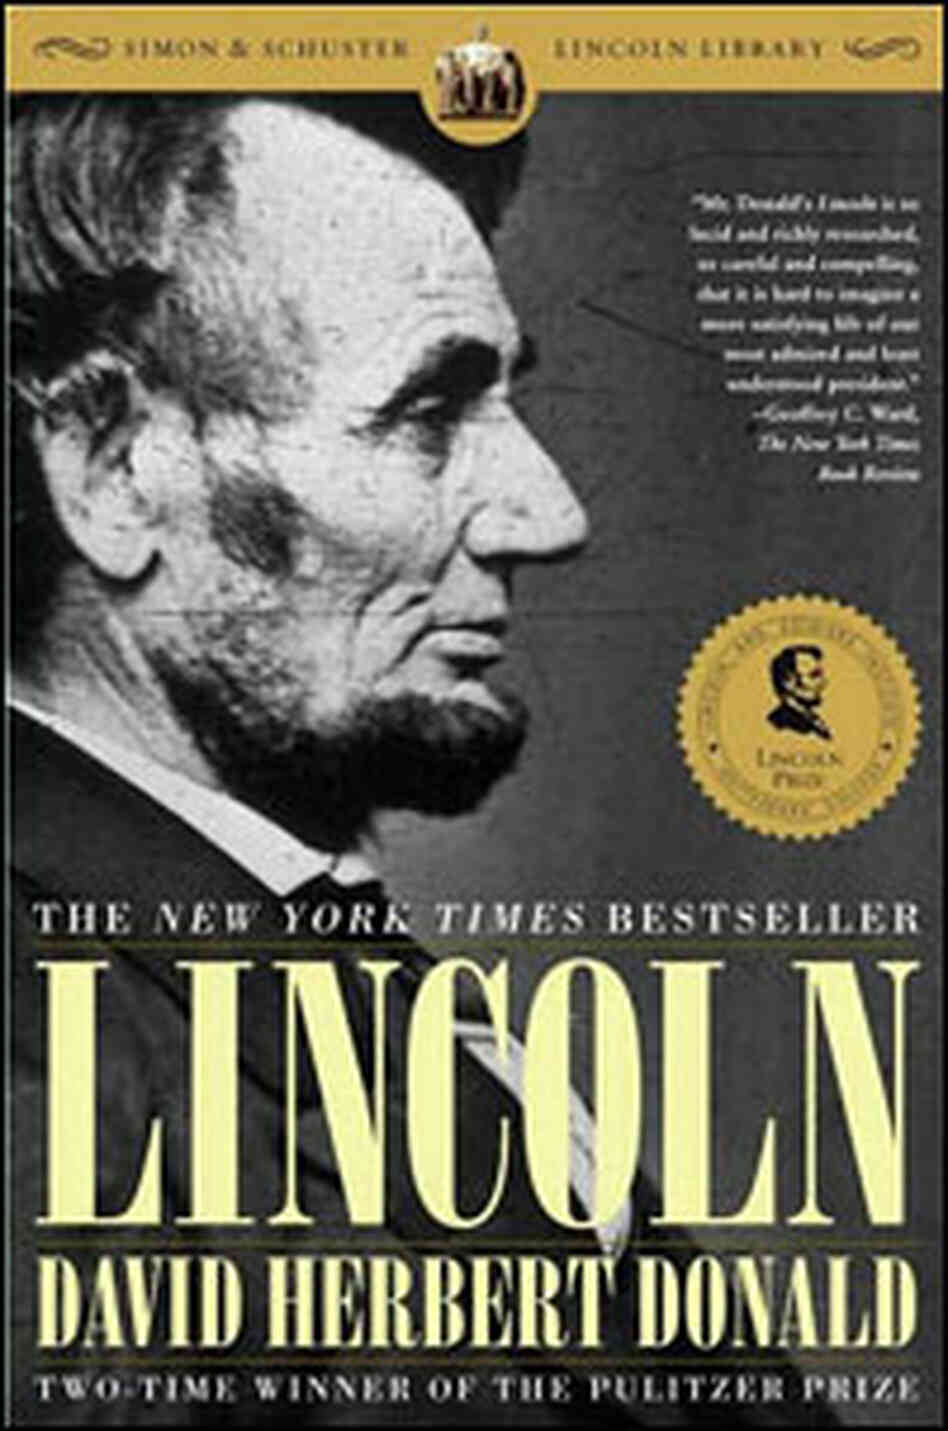 Lincoln, by David Herbert Donald